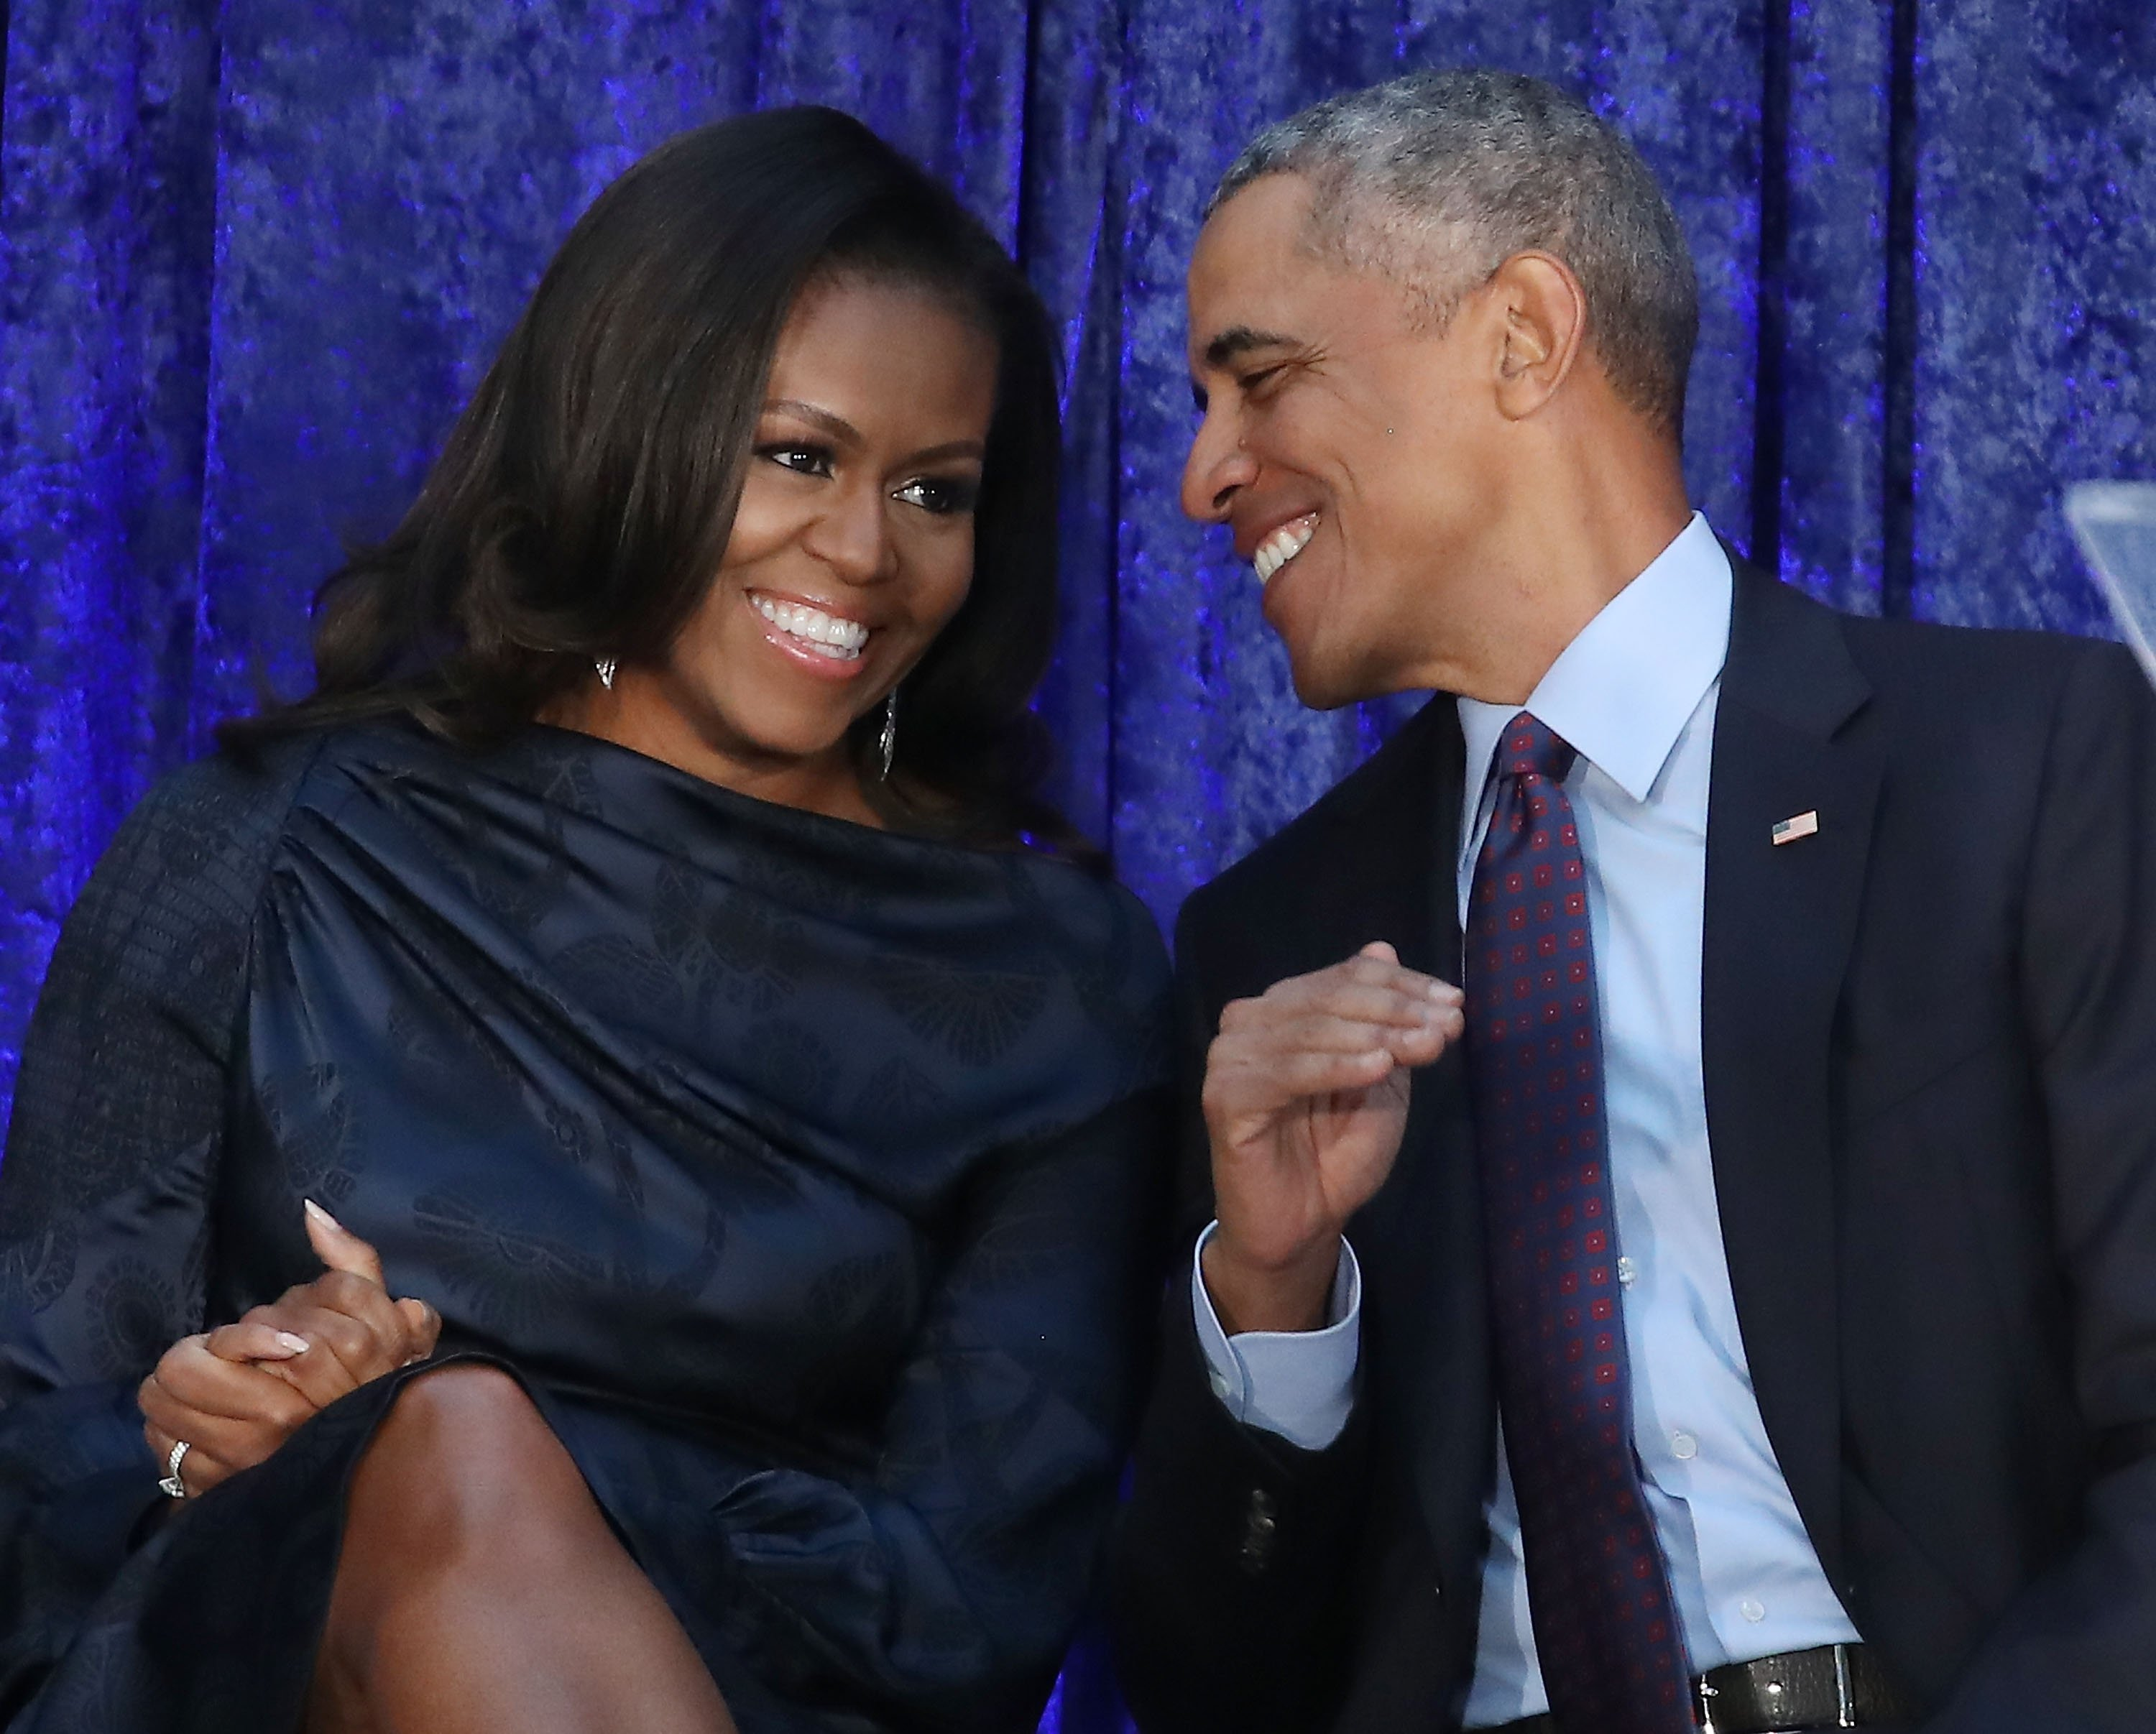 Former U.S. President Barack Obama and first lady Michelle Obama participate in the unveiling of their official portraits during a ceremony at the Smithsonian's National Portrait Gallery, on February 12, 2018, in Washington, DC. | Source: Getty Images.